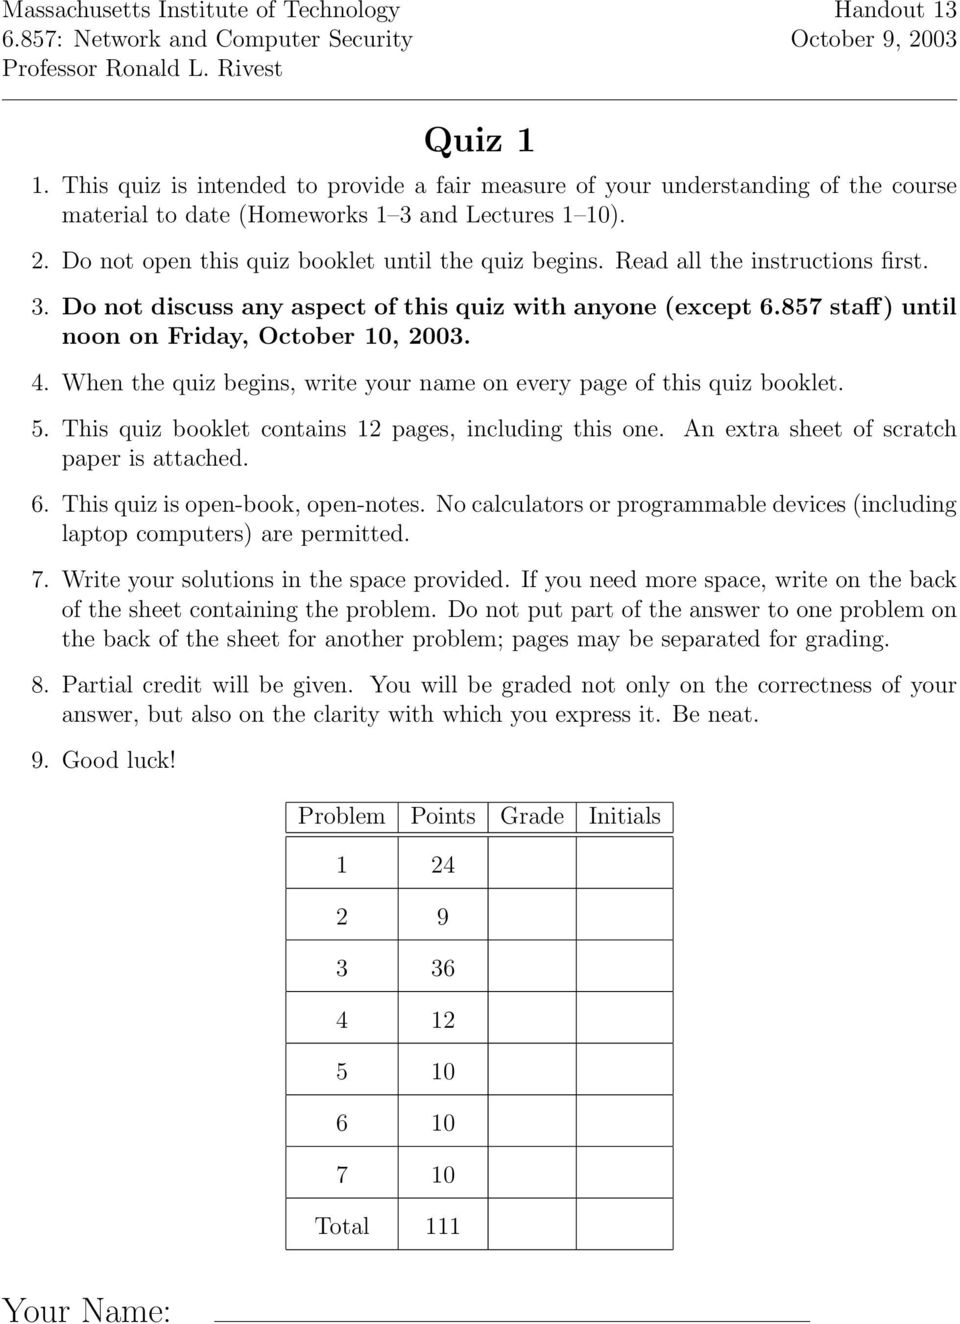 Read all the instructions first. 3. Do not discuss any aspect of this quiz with anyone (except 6.857 staff) until noon on Friday, October 10, 2003. 4.